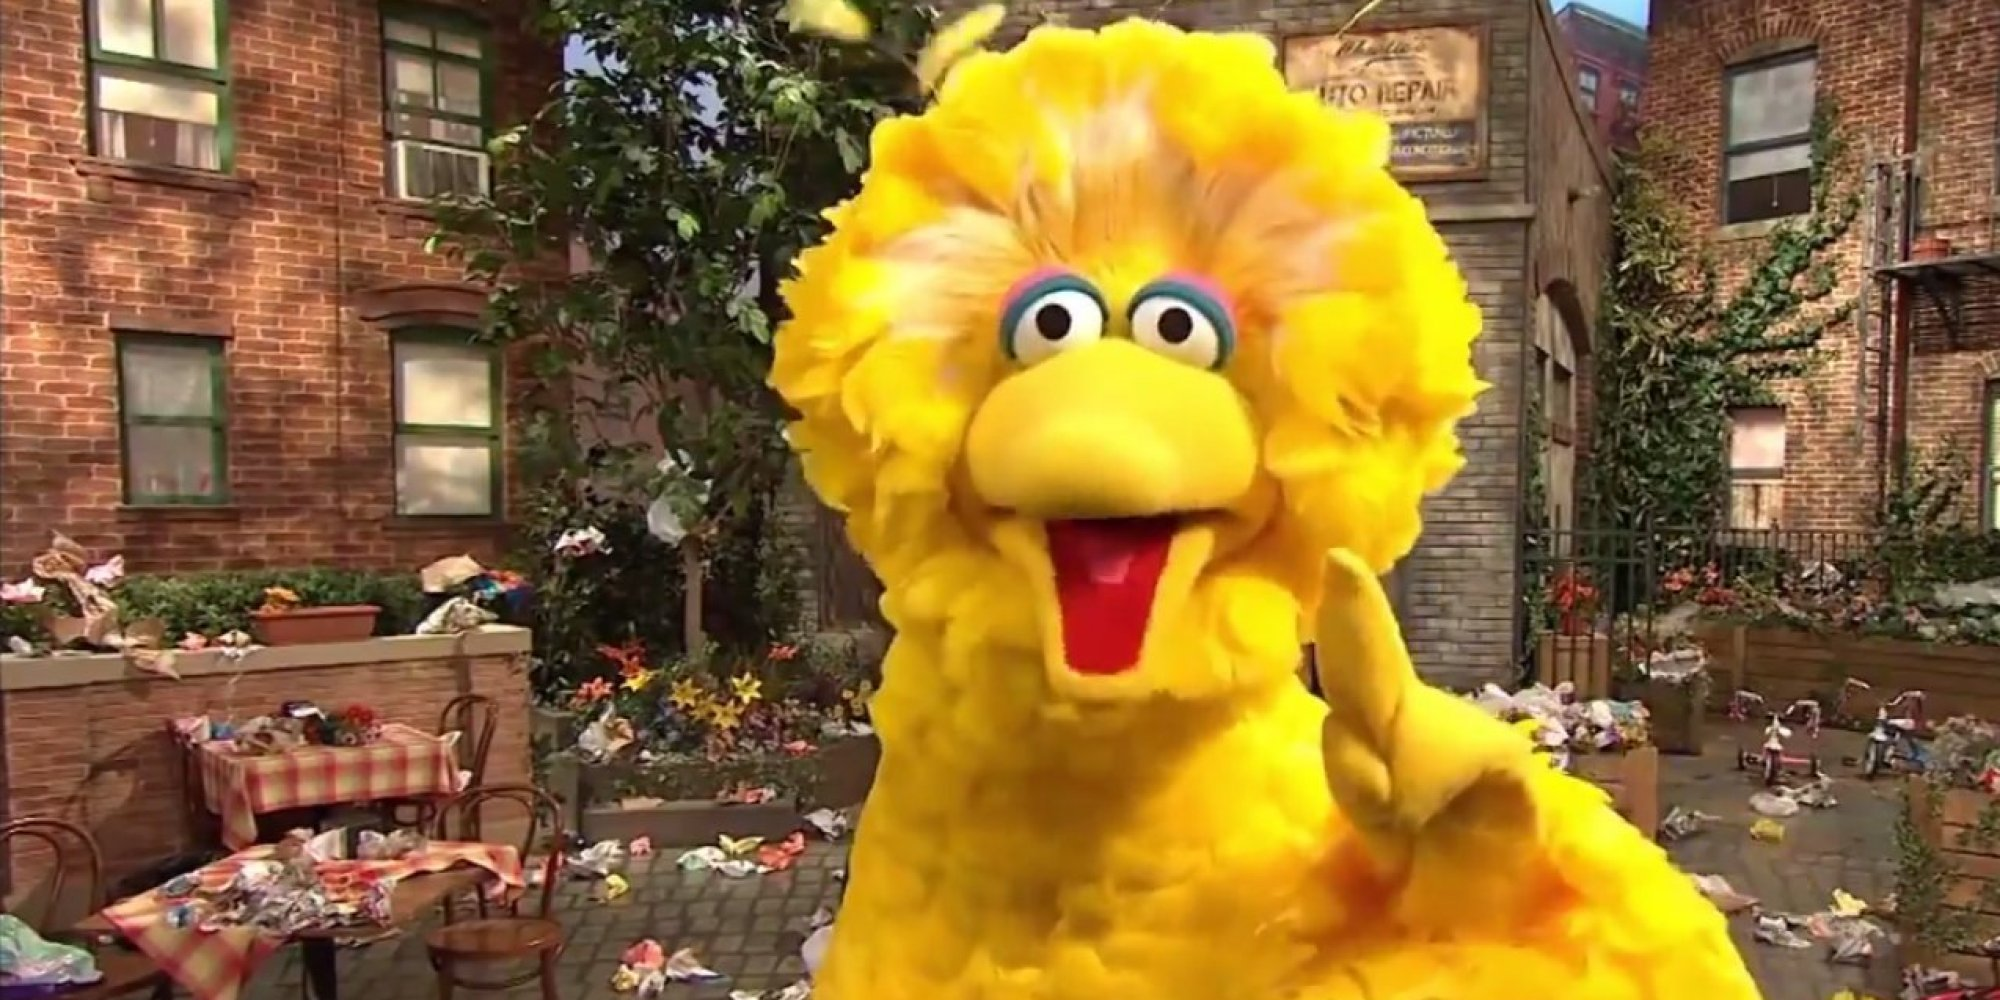 """11 hours ago· Caroll Spinney, the puppeteer who has portrayed Big Bird and Oscar the Grouch on """"Sesame Street"""" since the program's premiere, announced Wednesday that ."""